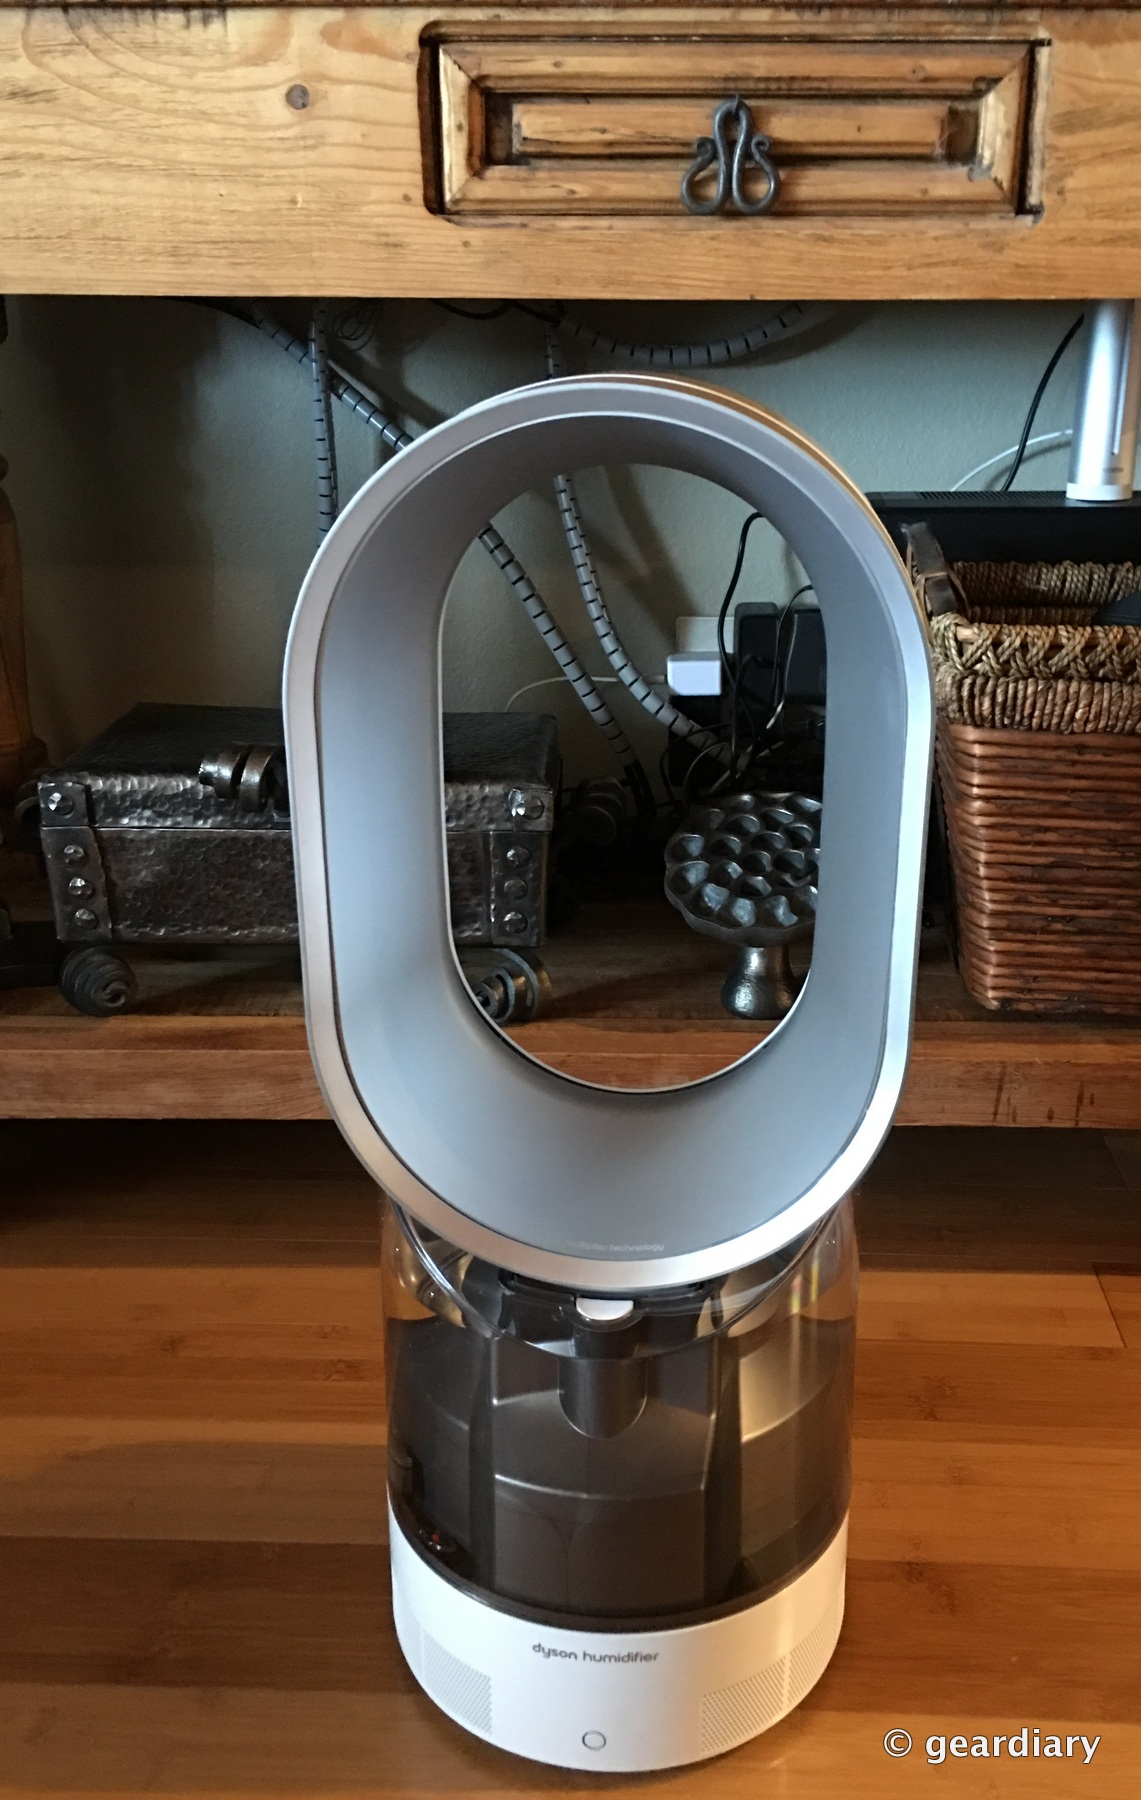 The Dyson AM10 Humidifier: Puts Humidity Where It Belongs in the Air  #78421E